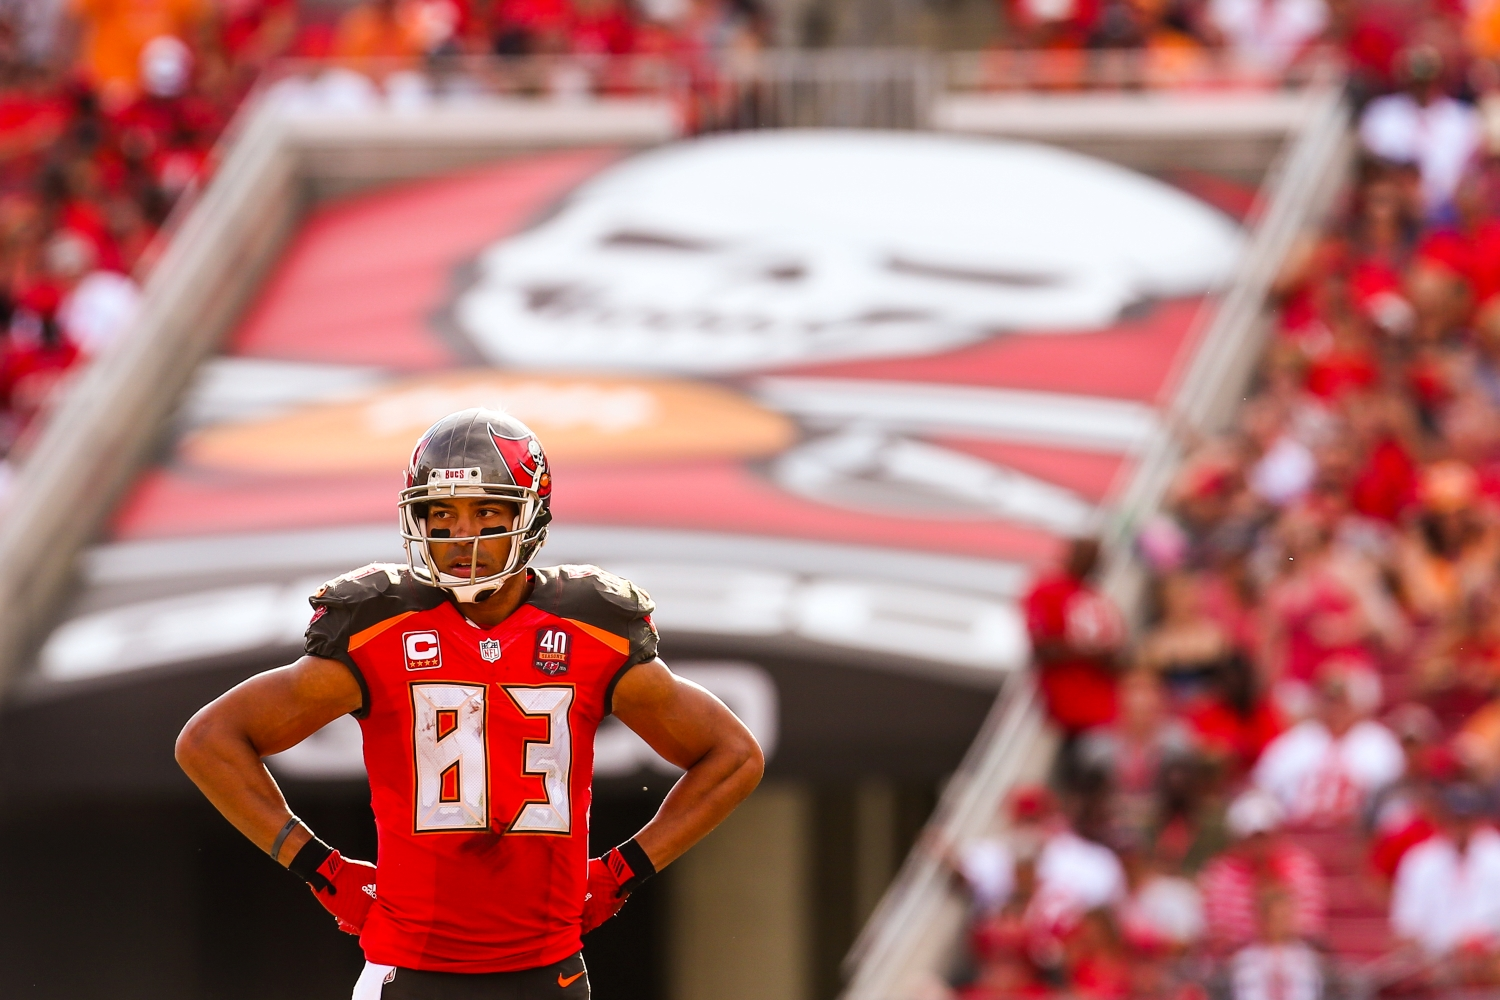 Vincent Jackson's Shocking Death Has Shed Much-Needed Light on a Life-Threatening Problem Pro Athletes Often Keep Hidden